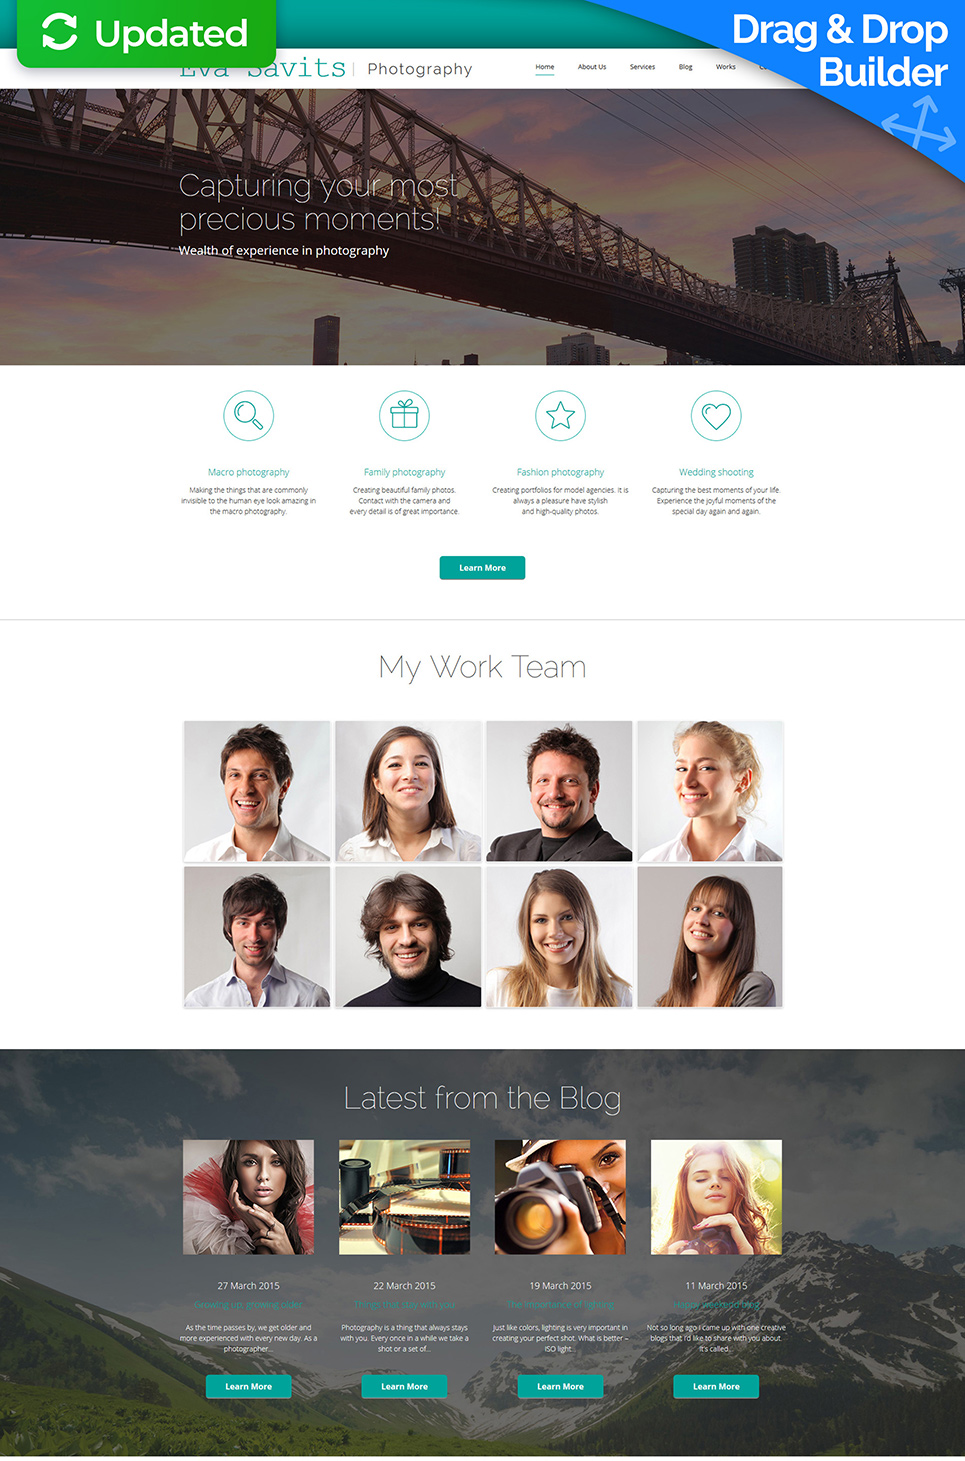 Business card website, Multipurpose websites MotoCMS Photo Gallery Template